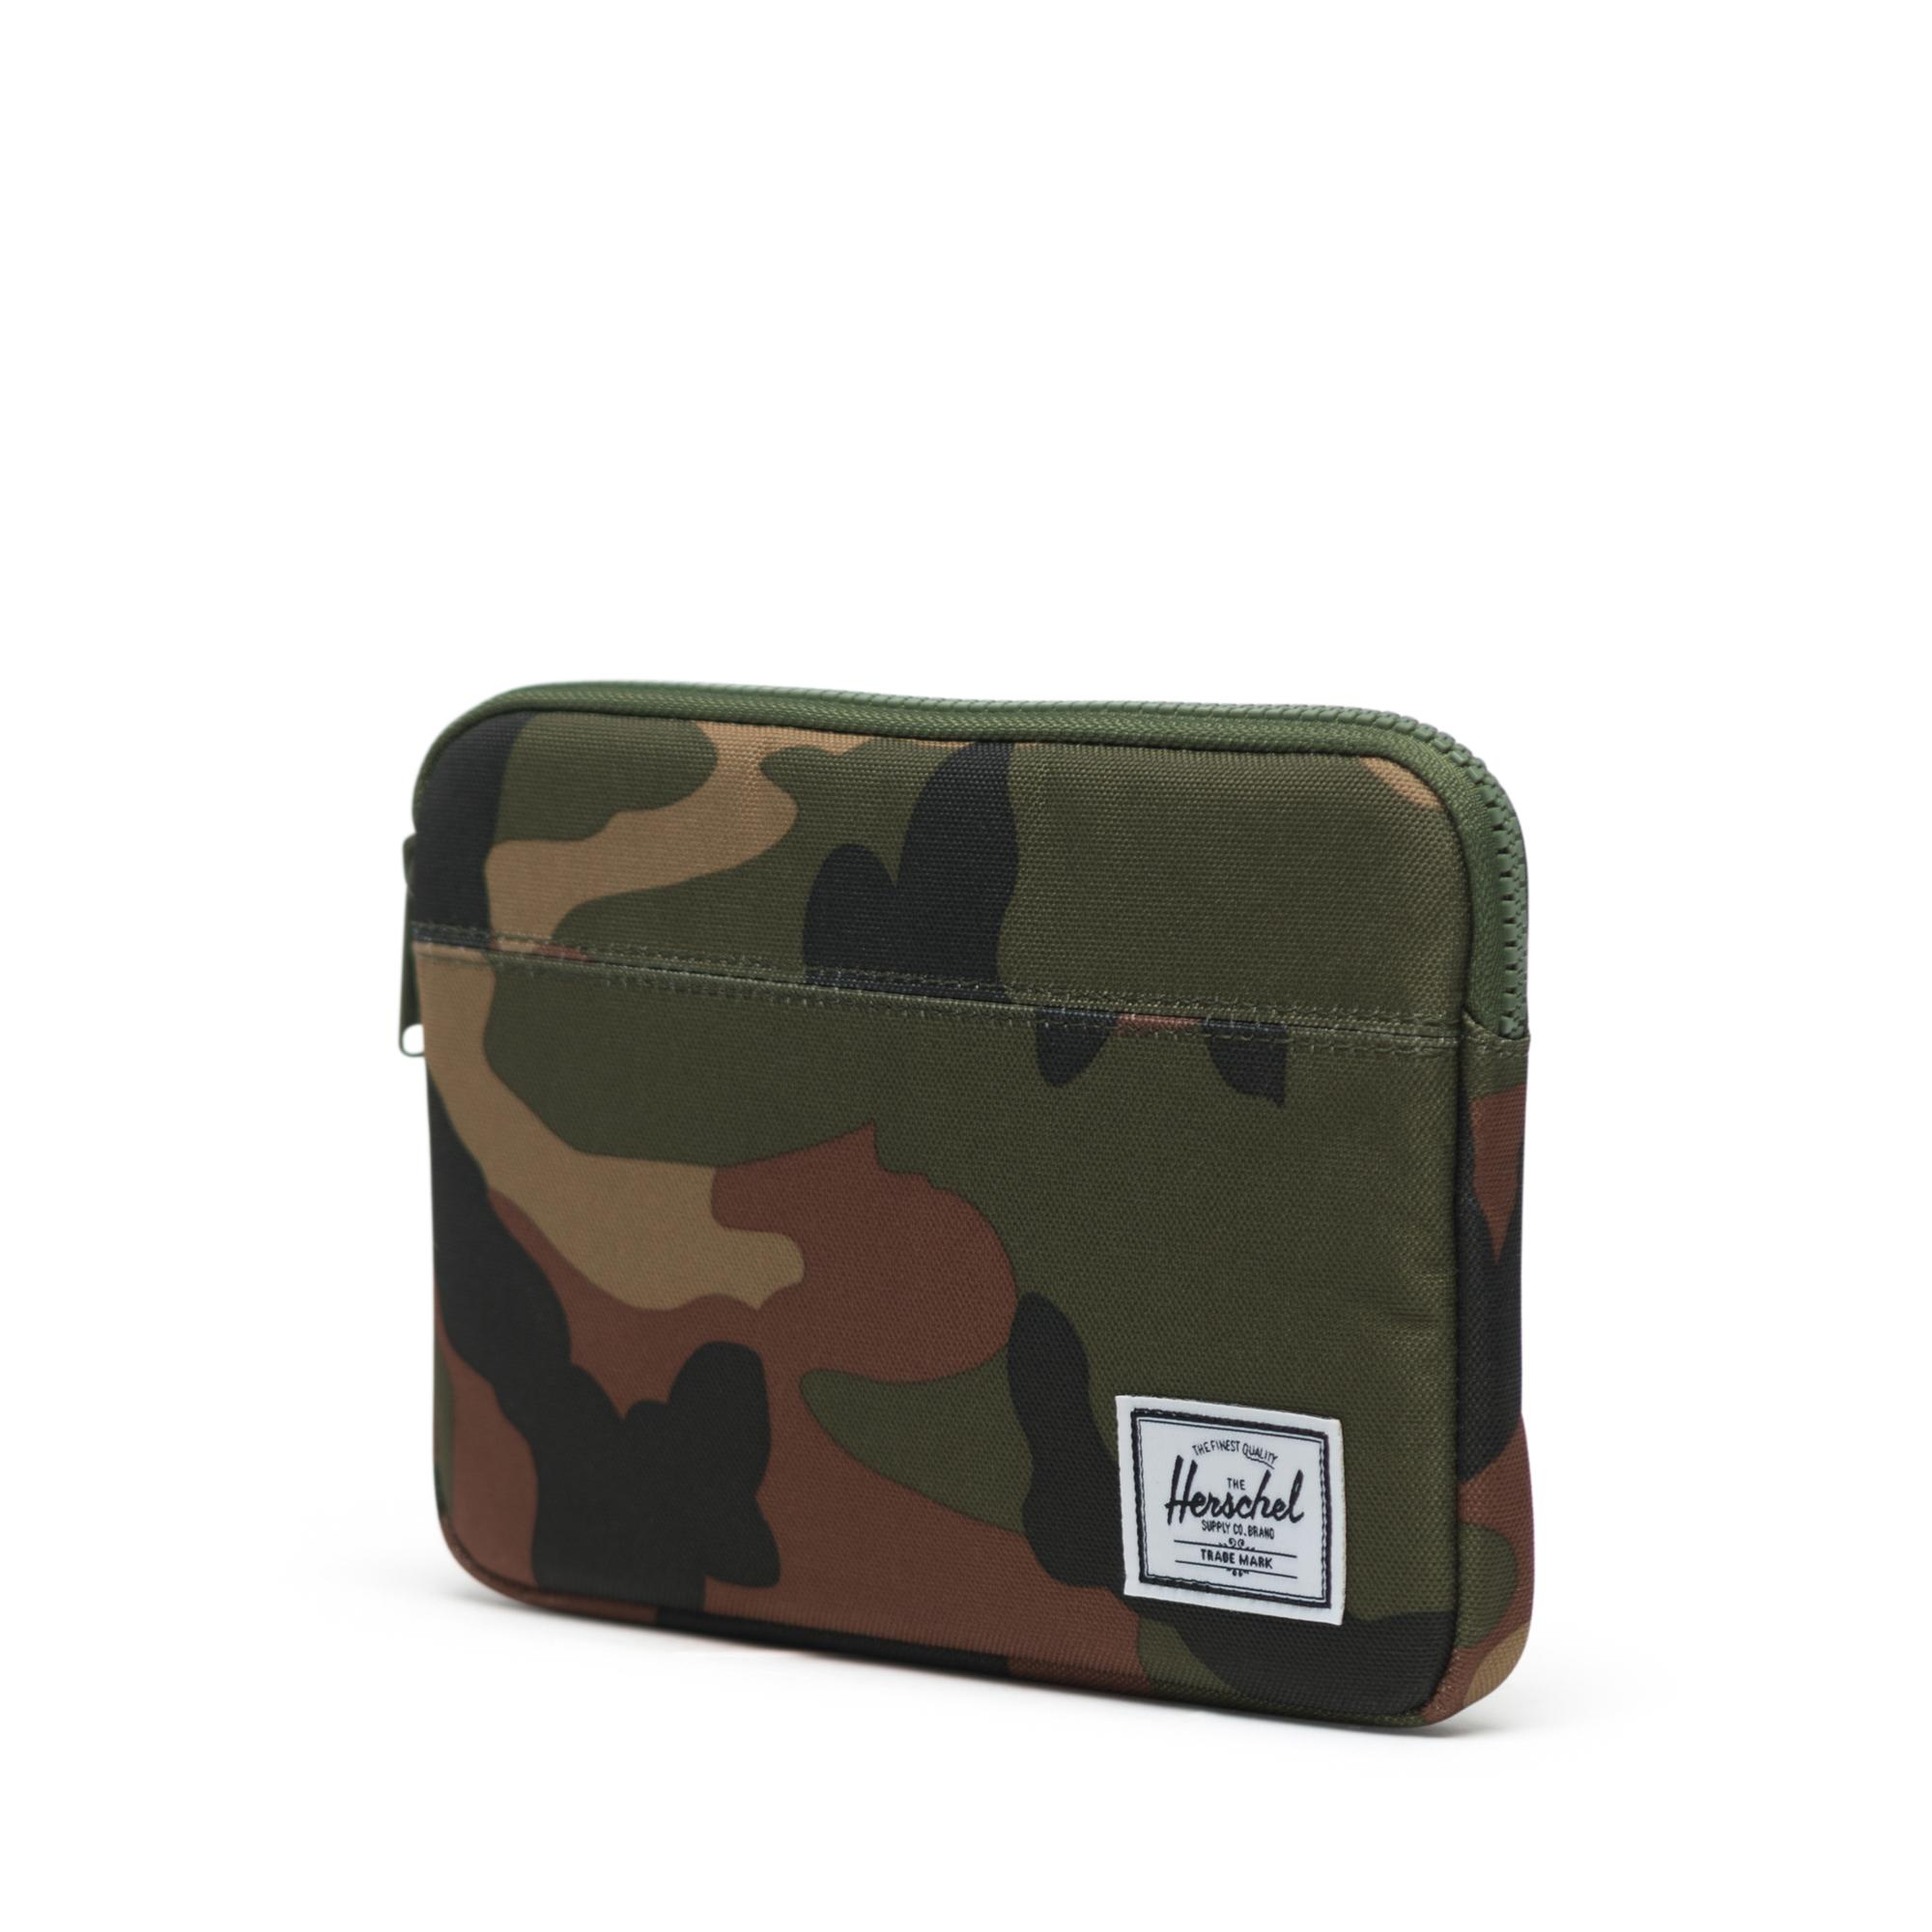 timeless design bc756 ee50b Laptop Sleeves | Laptop Cases | Herschel Supply Company